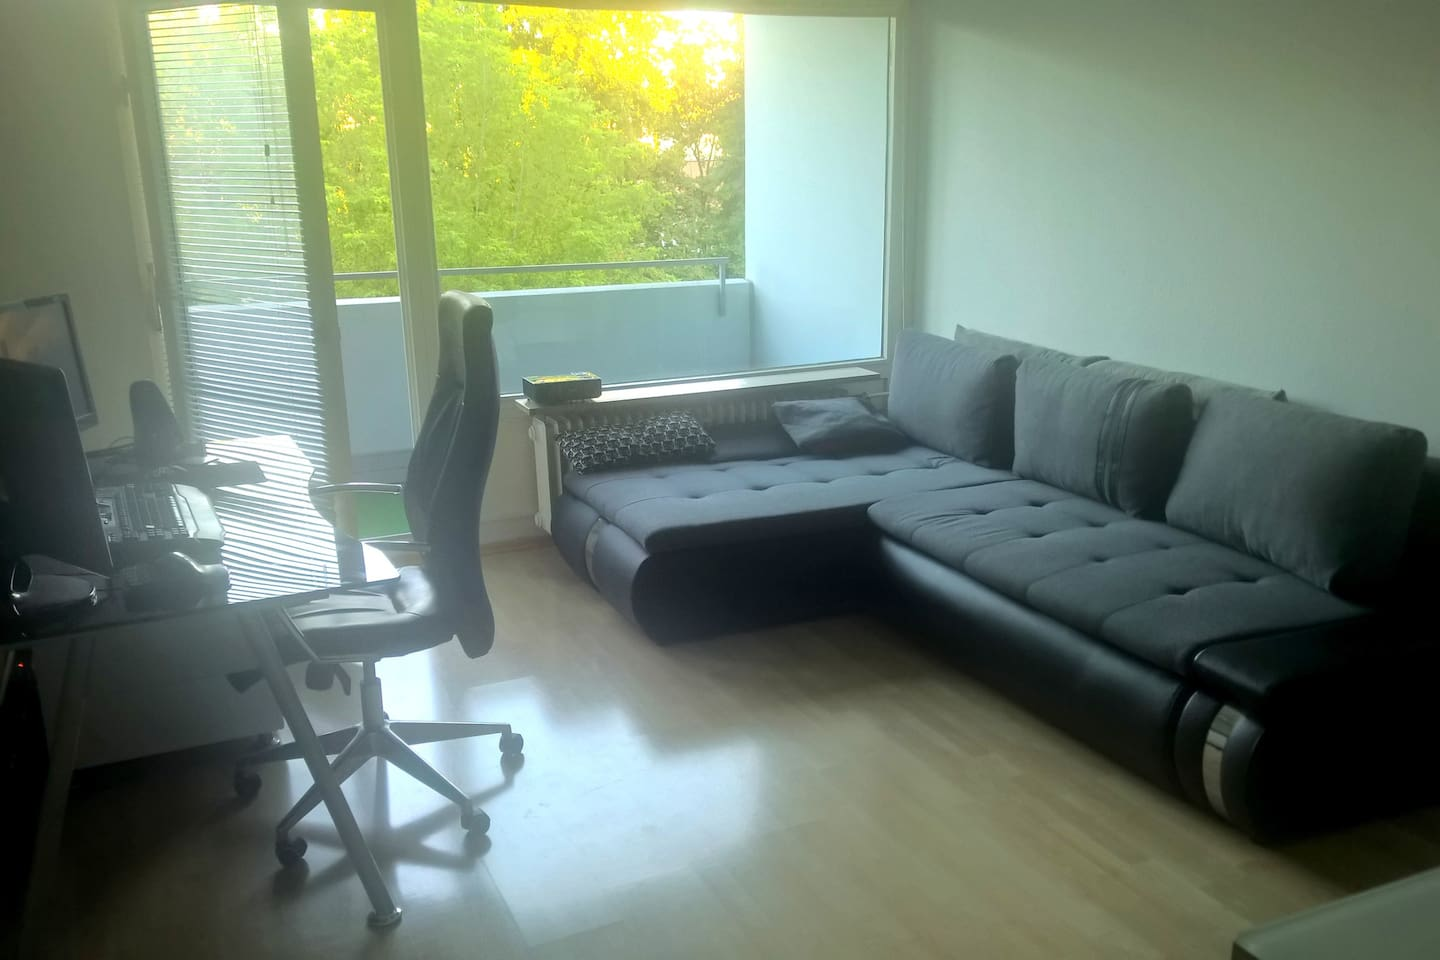 living room with couch and space for airbed